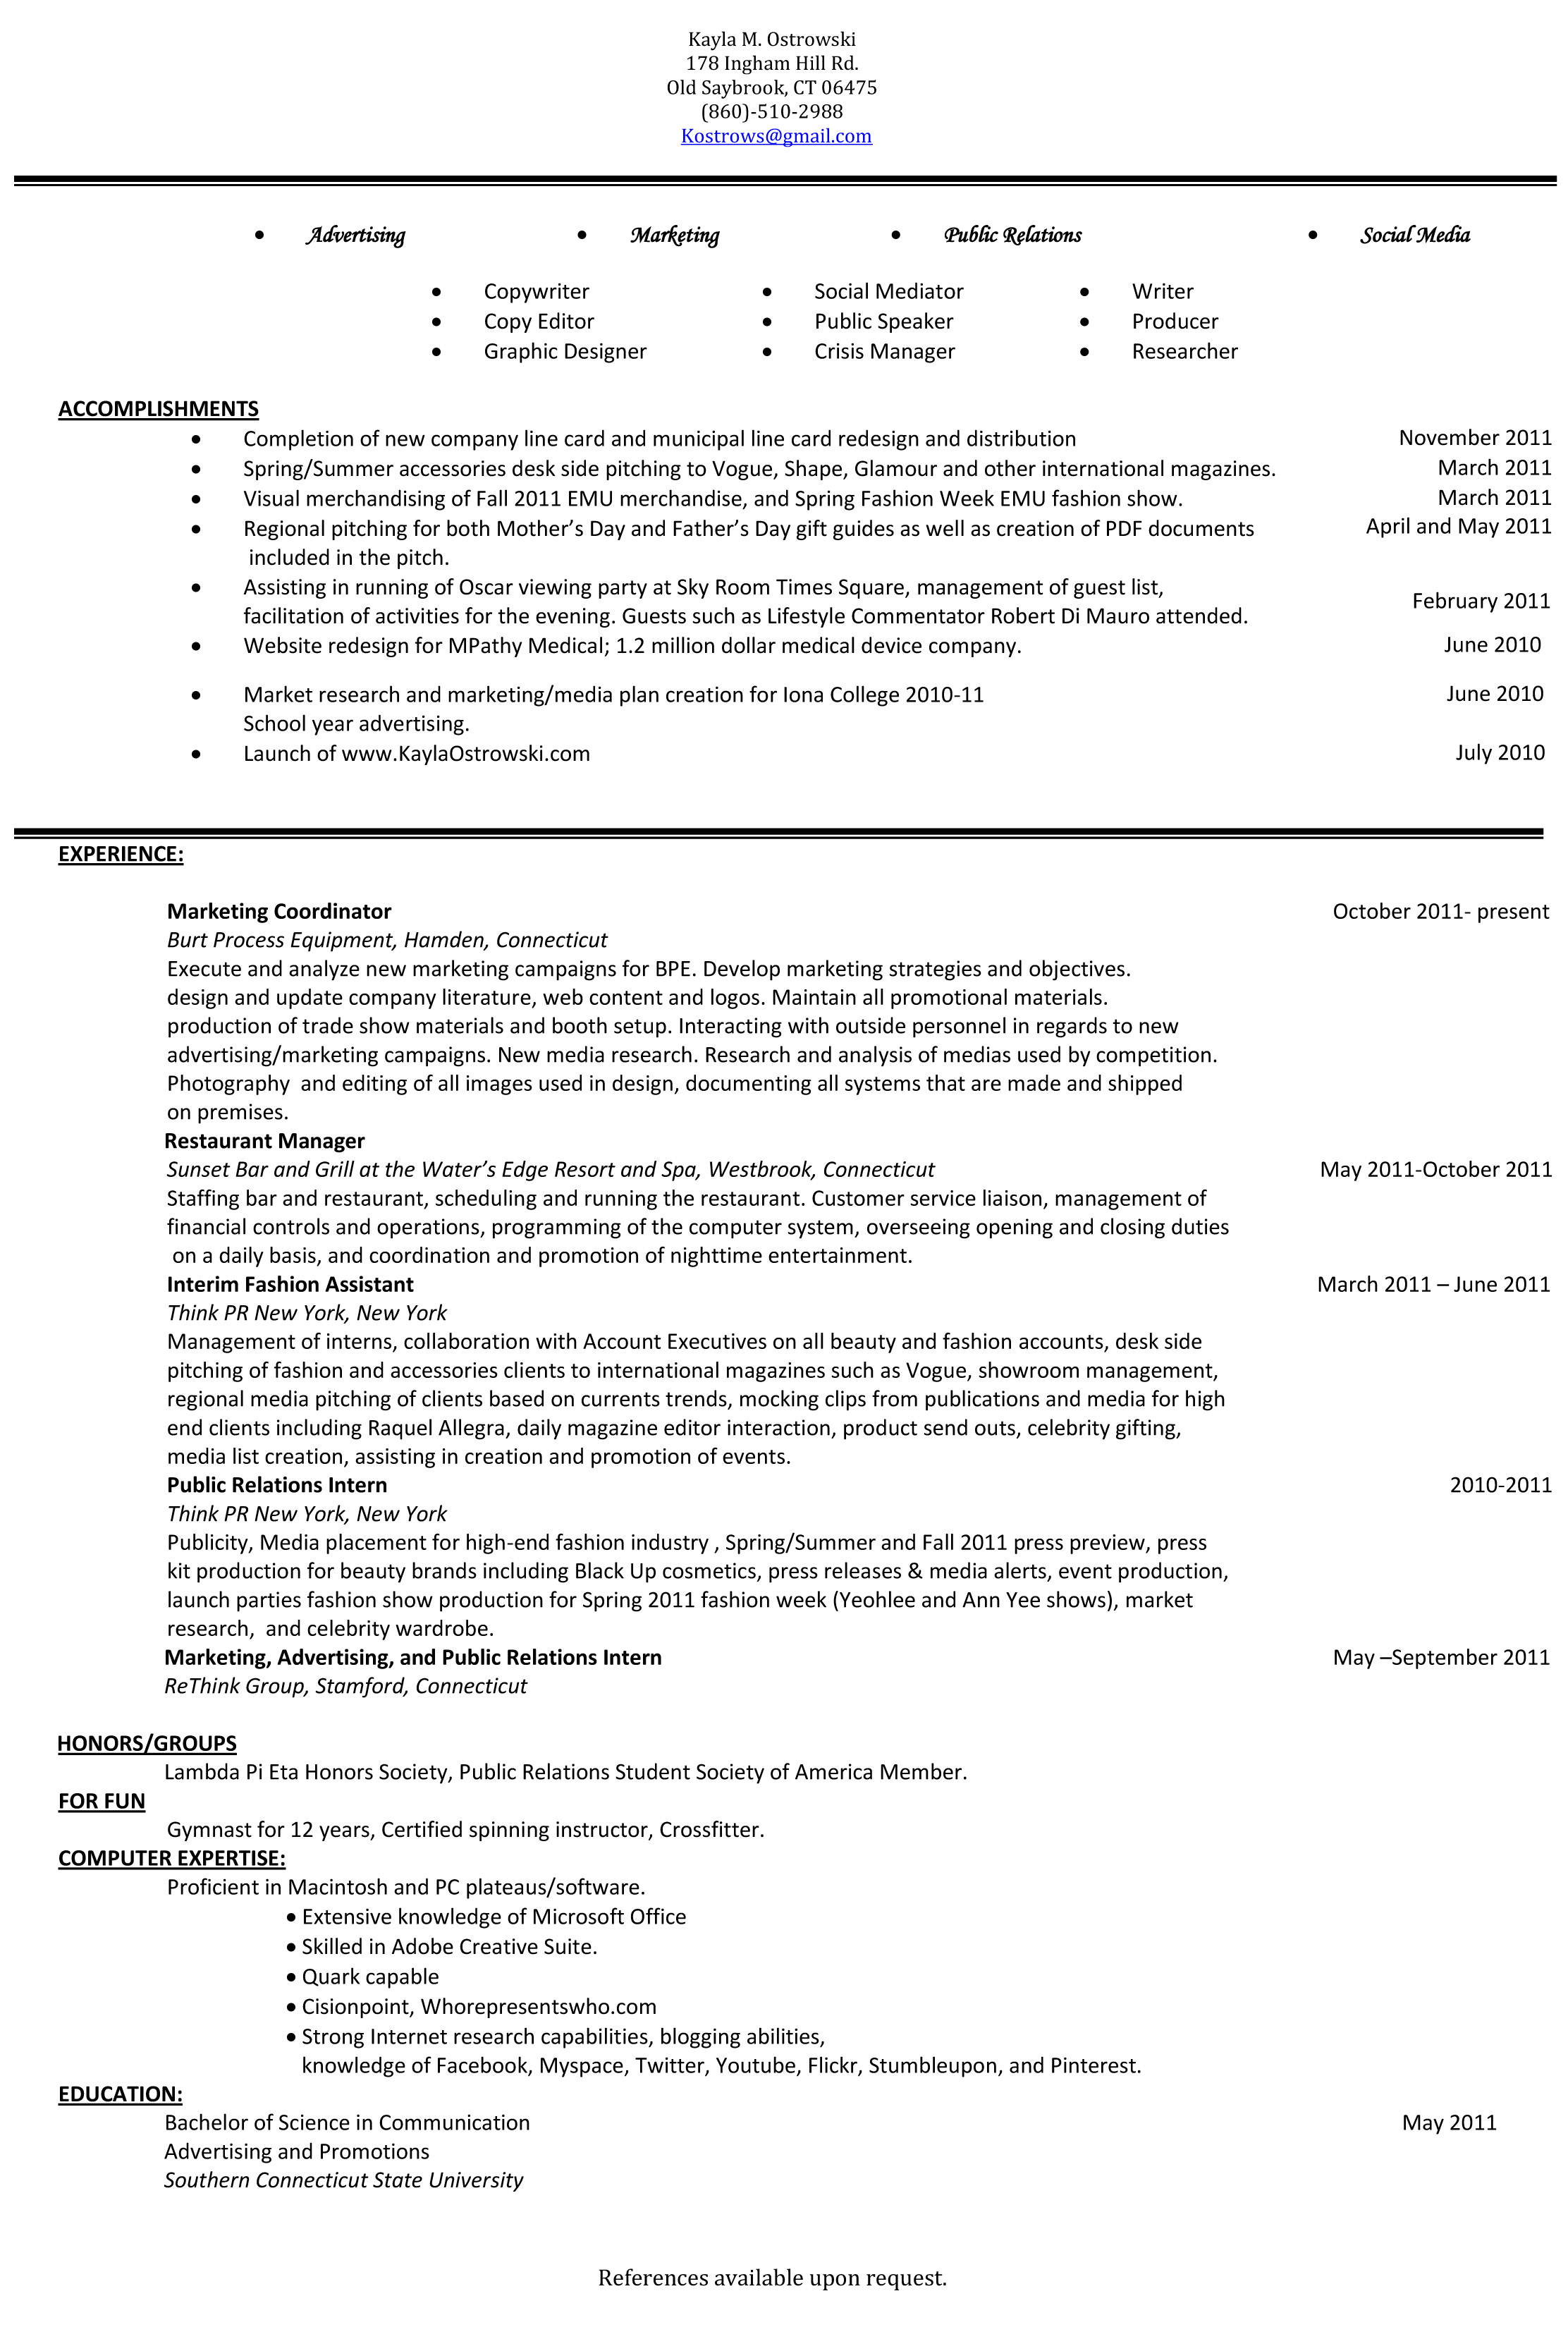 current resume mar adv soc med pr image - Pr Resume